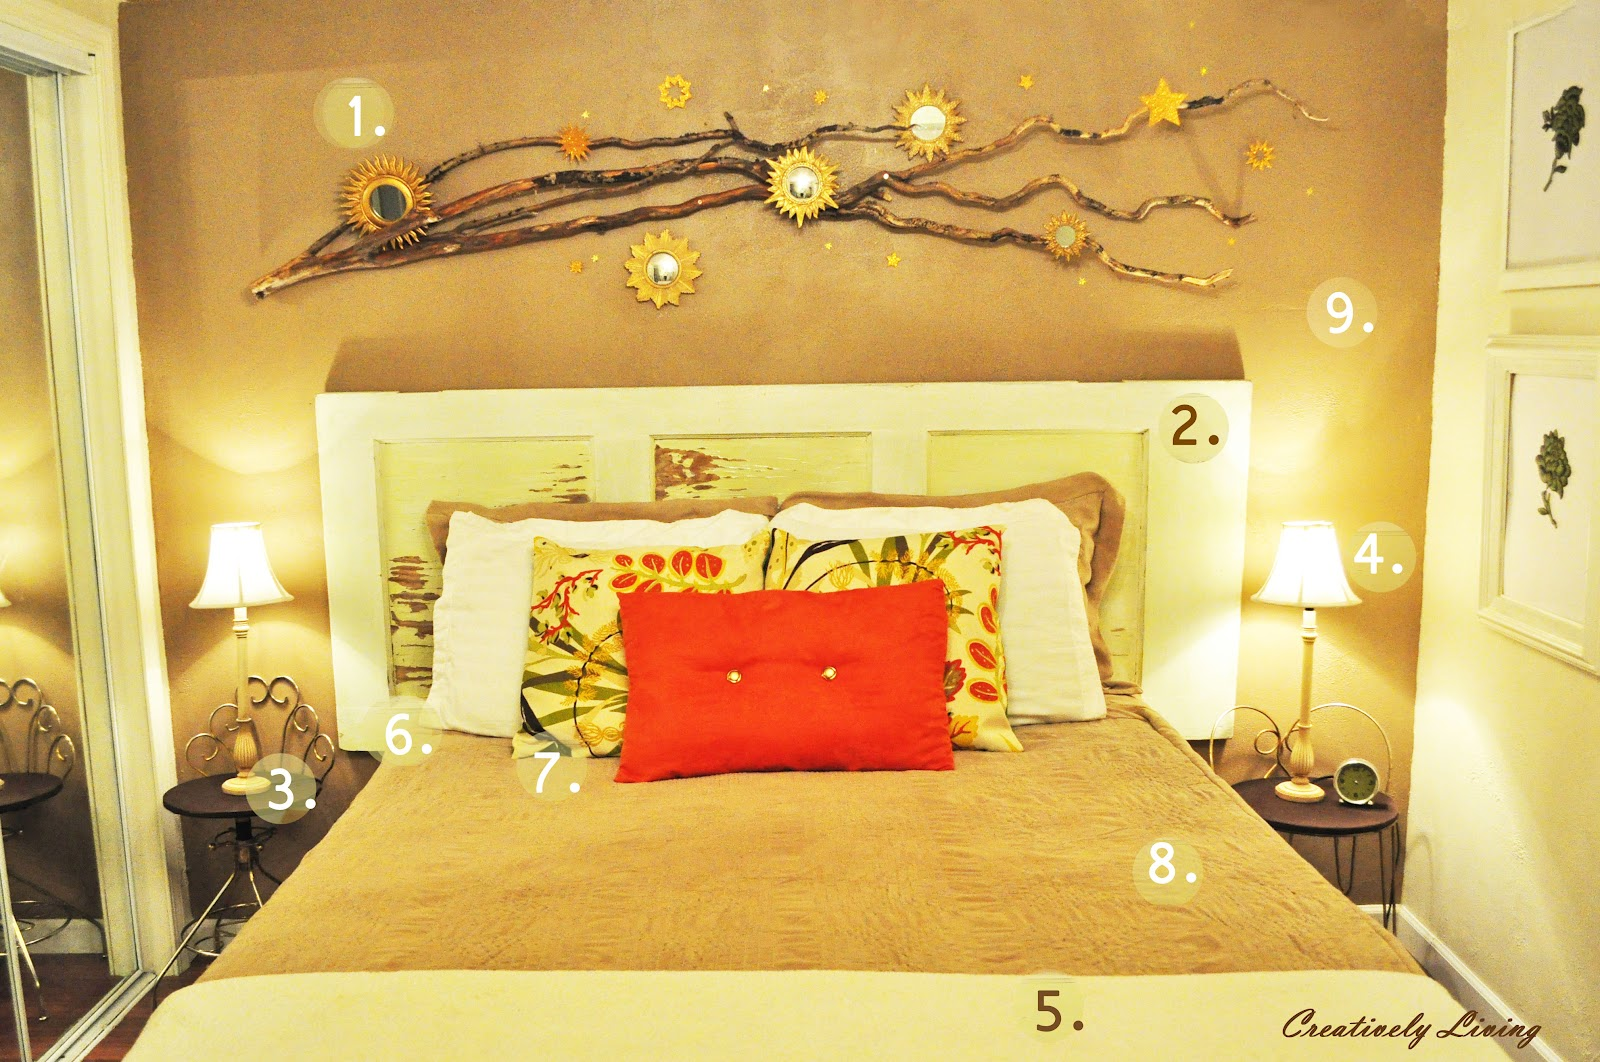 inexpensive tips on bedroom focal walls creatively living blog inexpensive tips on bedroom focal walls